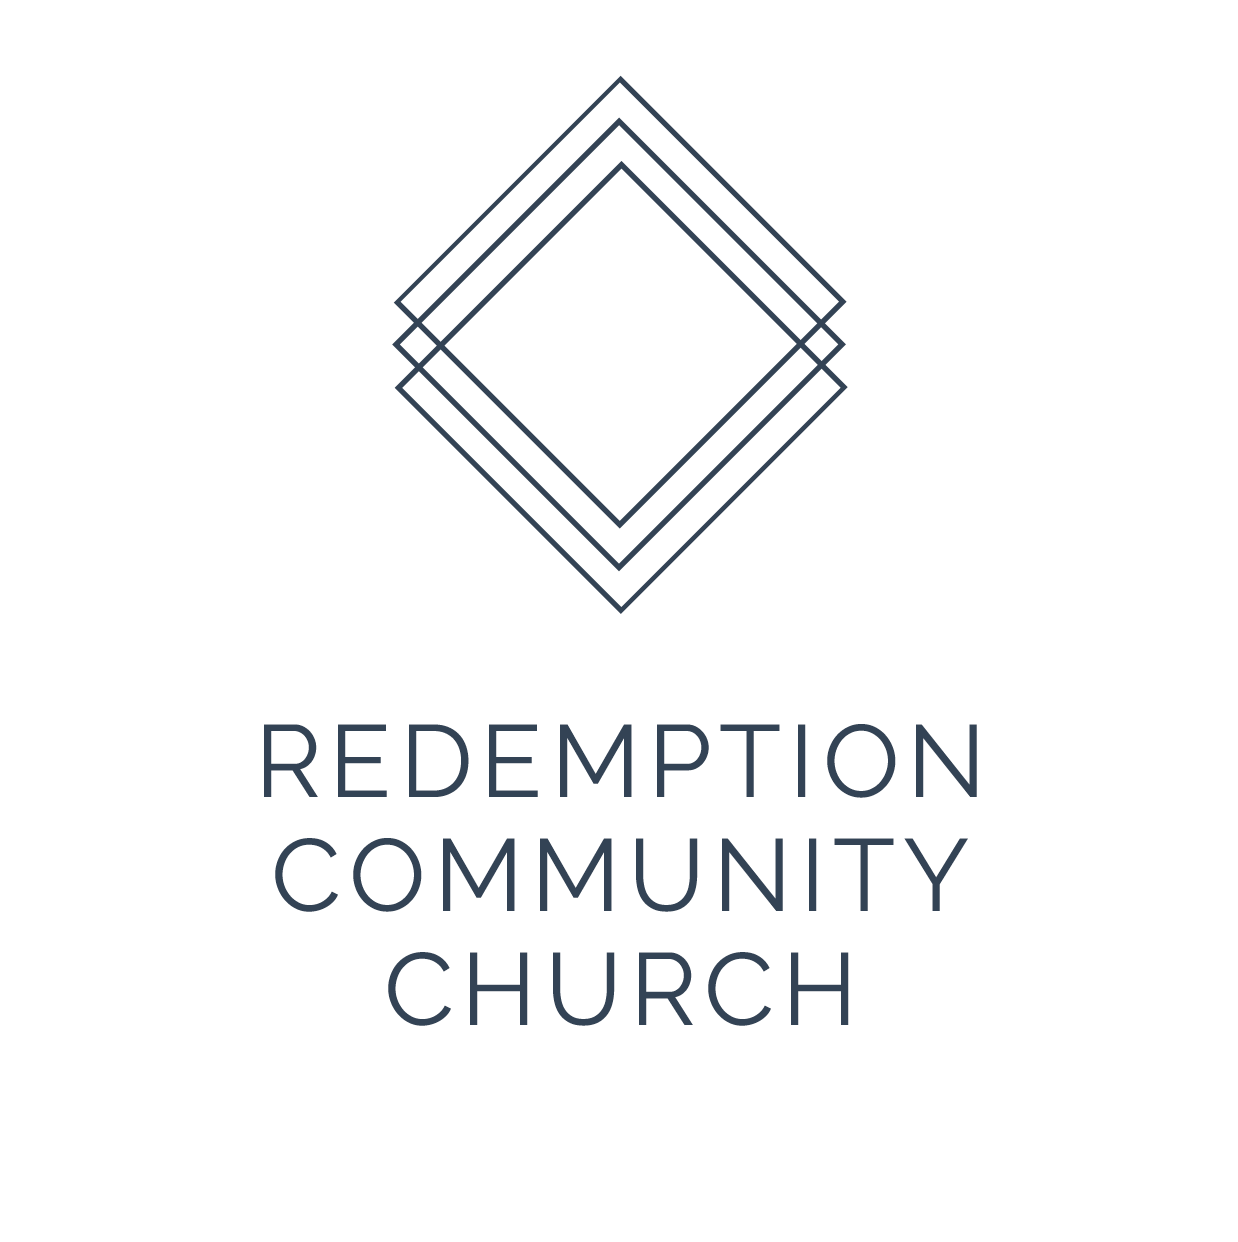 Redemption Community Church